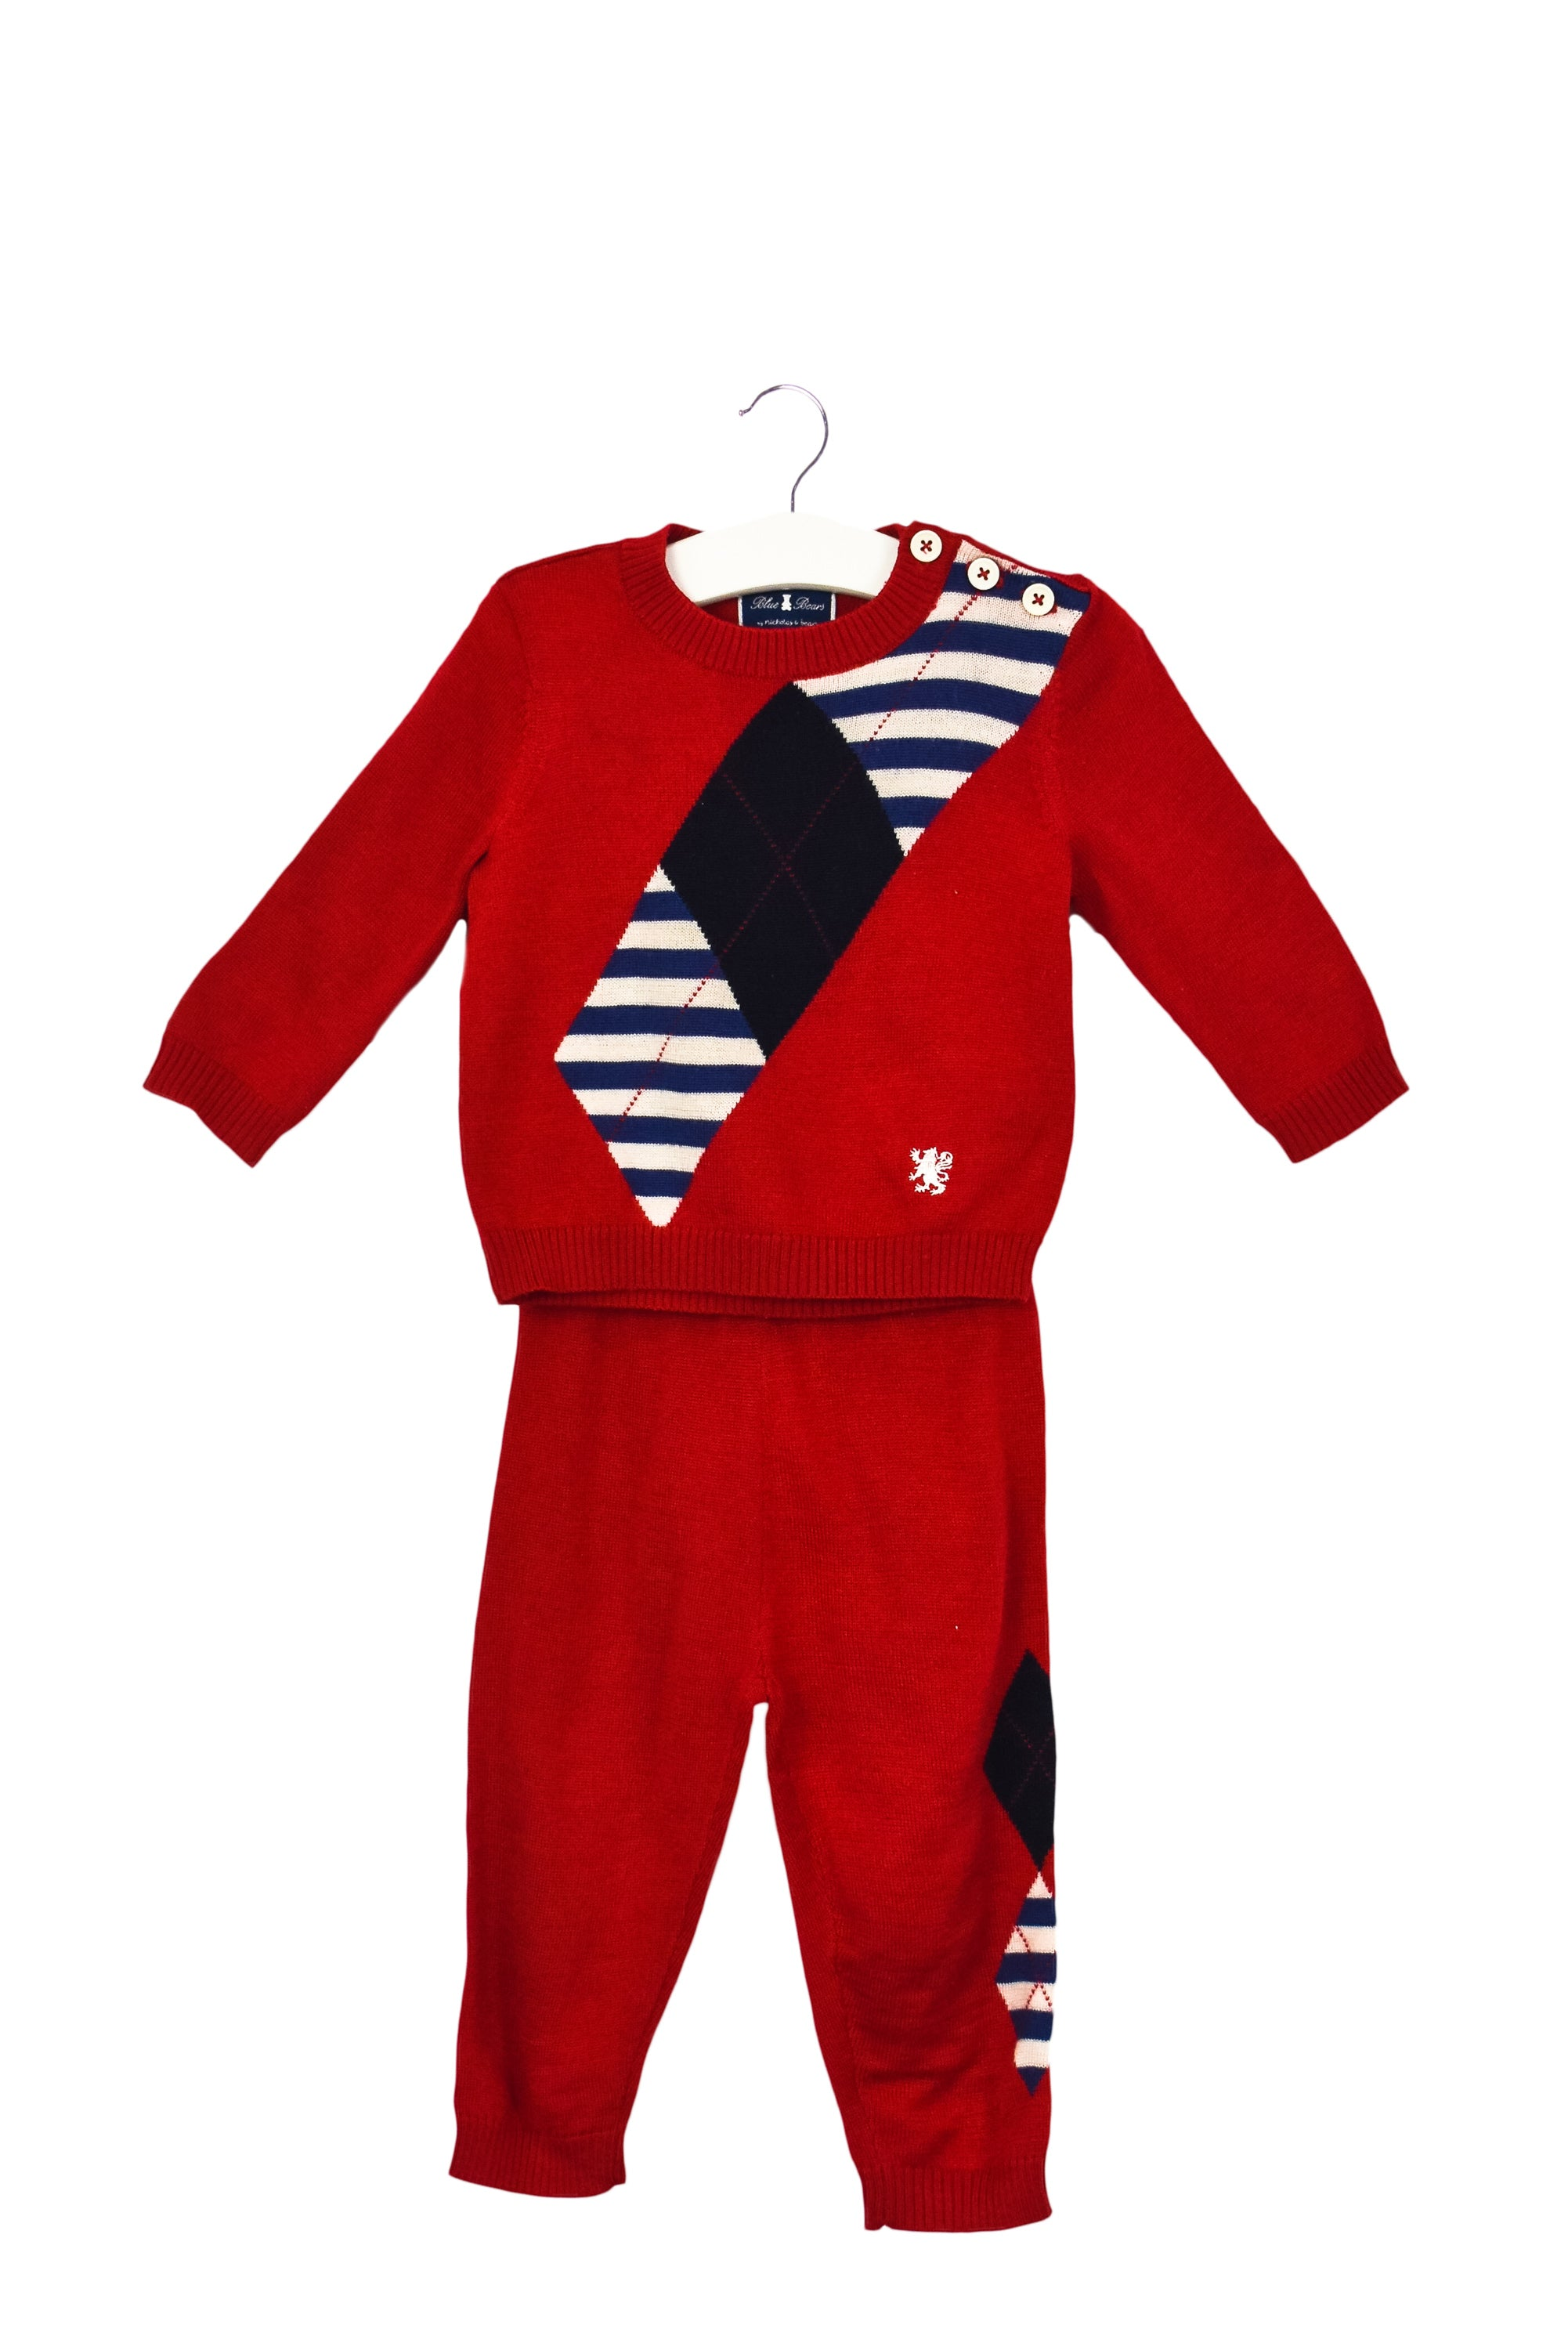 10035301 Nicholas & Bears Baby~Sweater and Pants Set 9M at Retykle